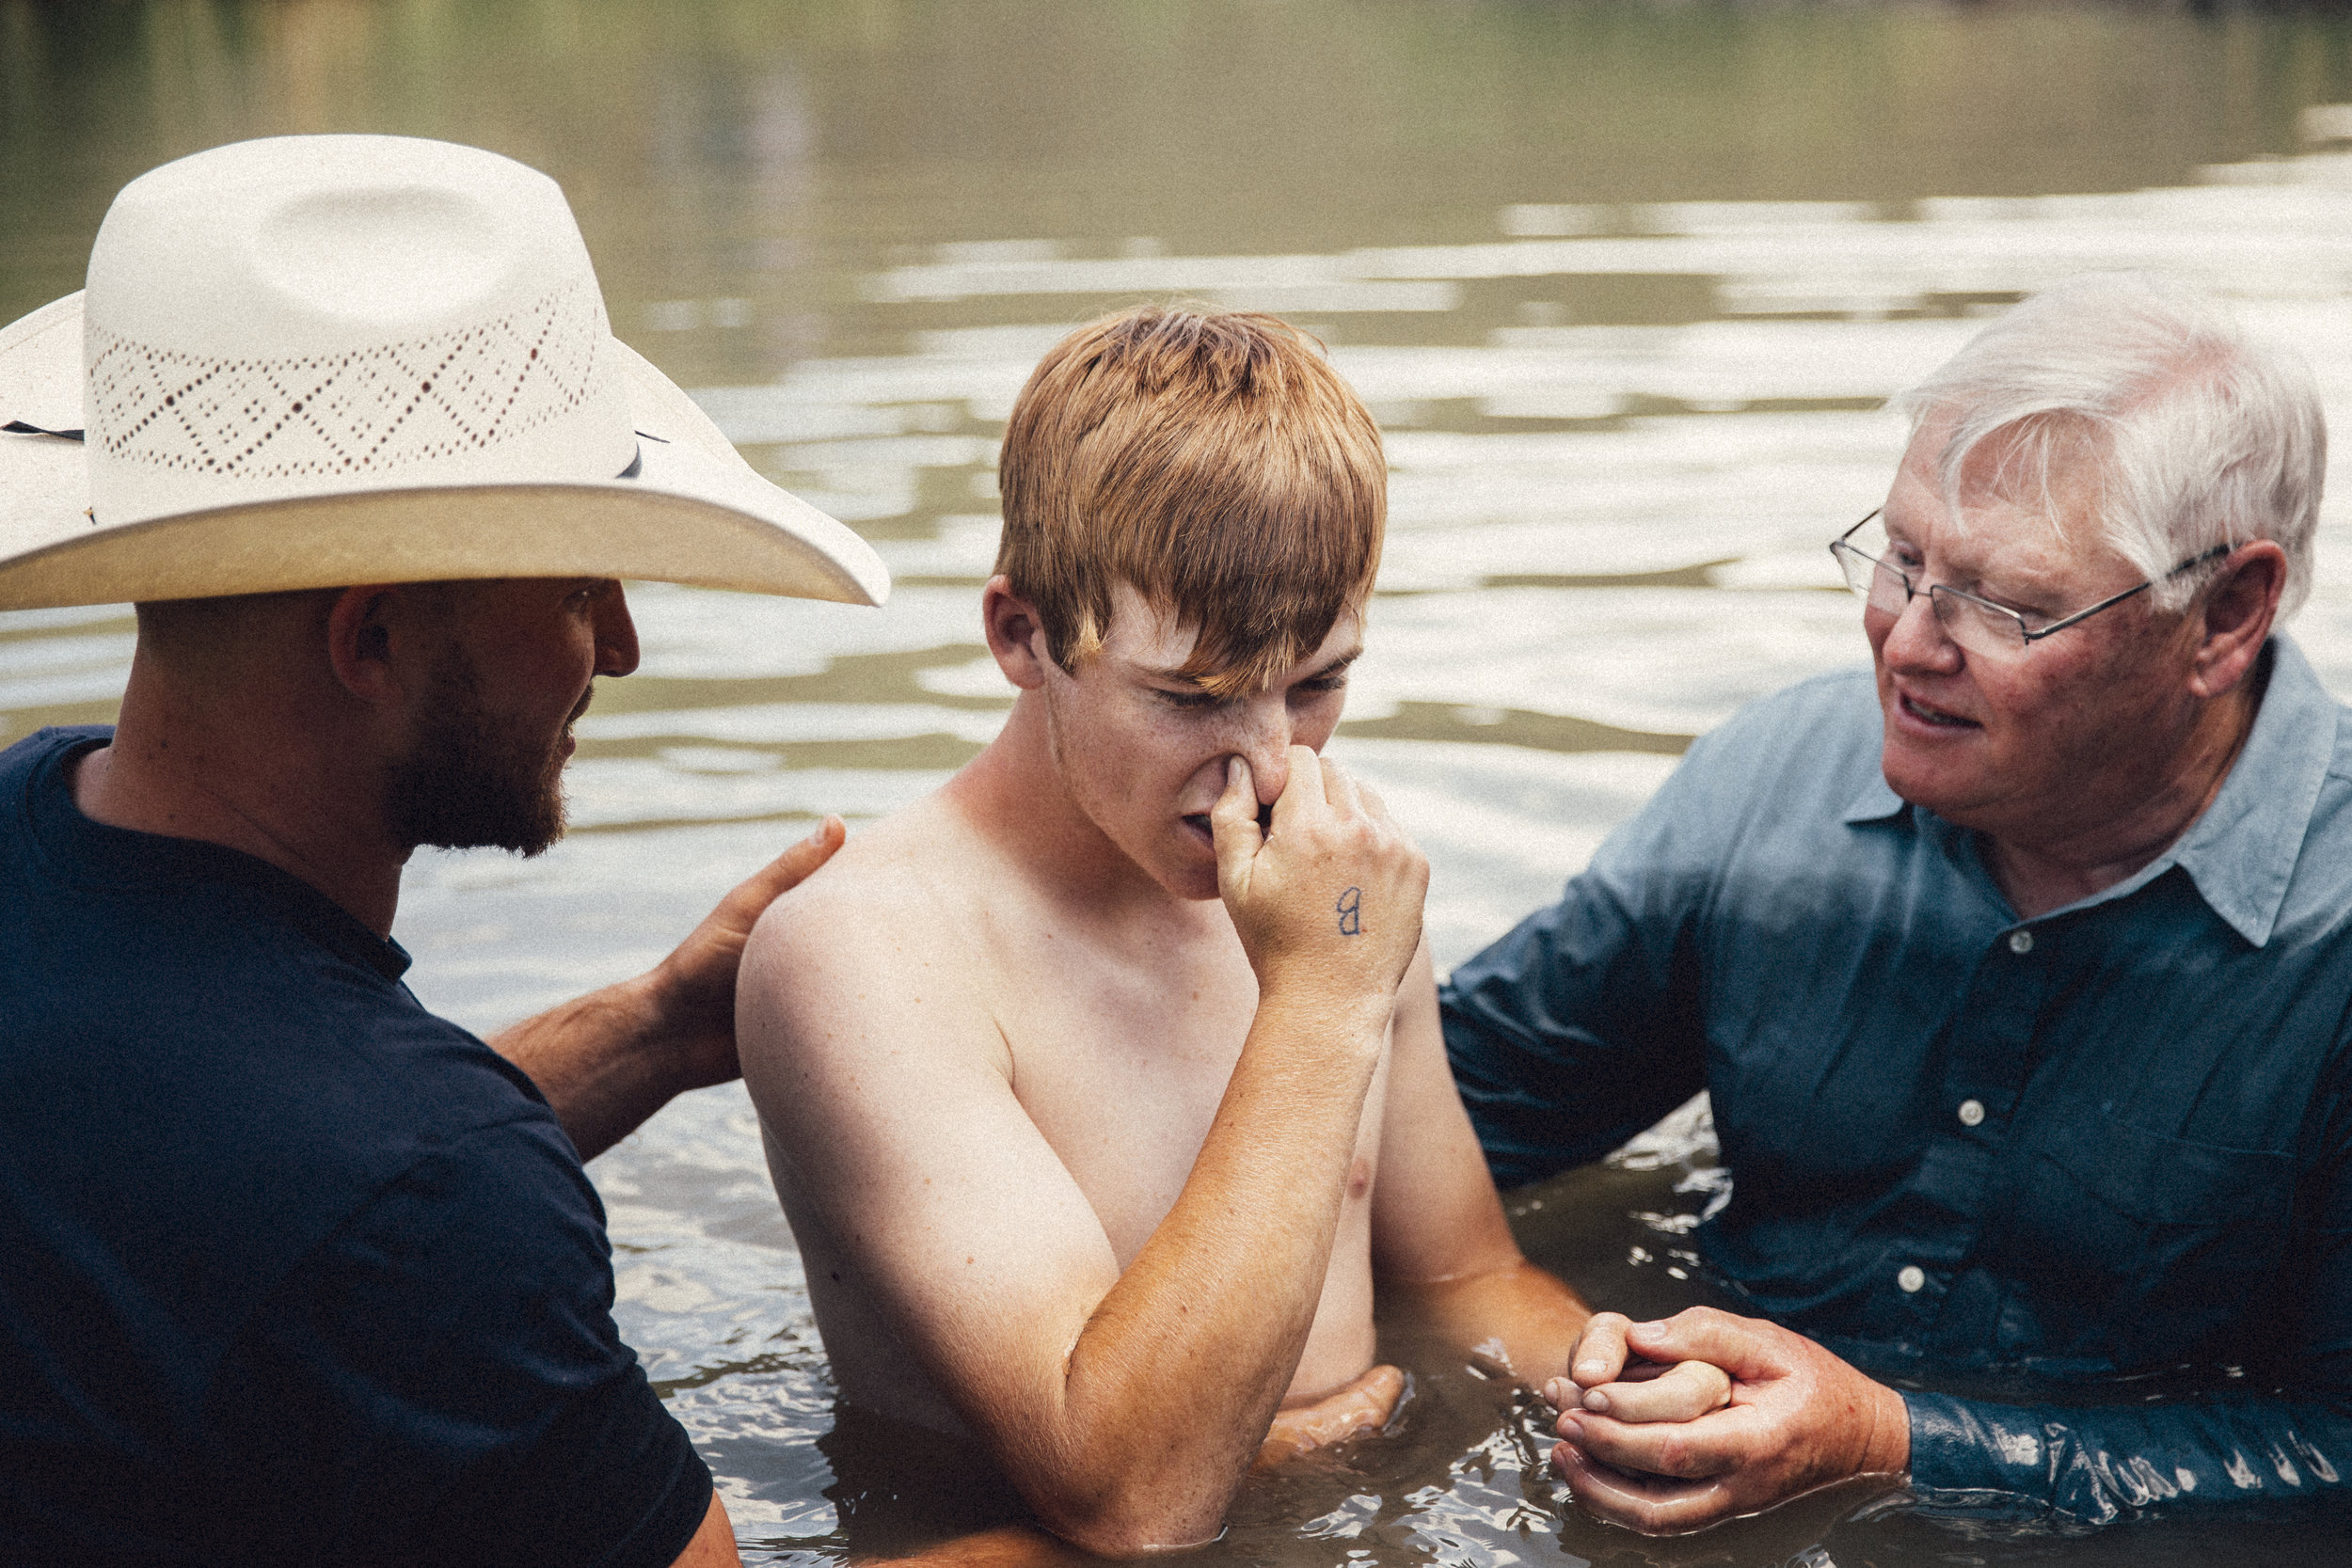 Baptising in the river